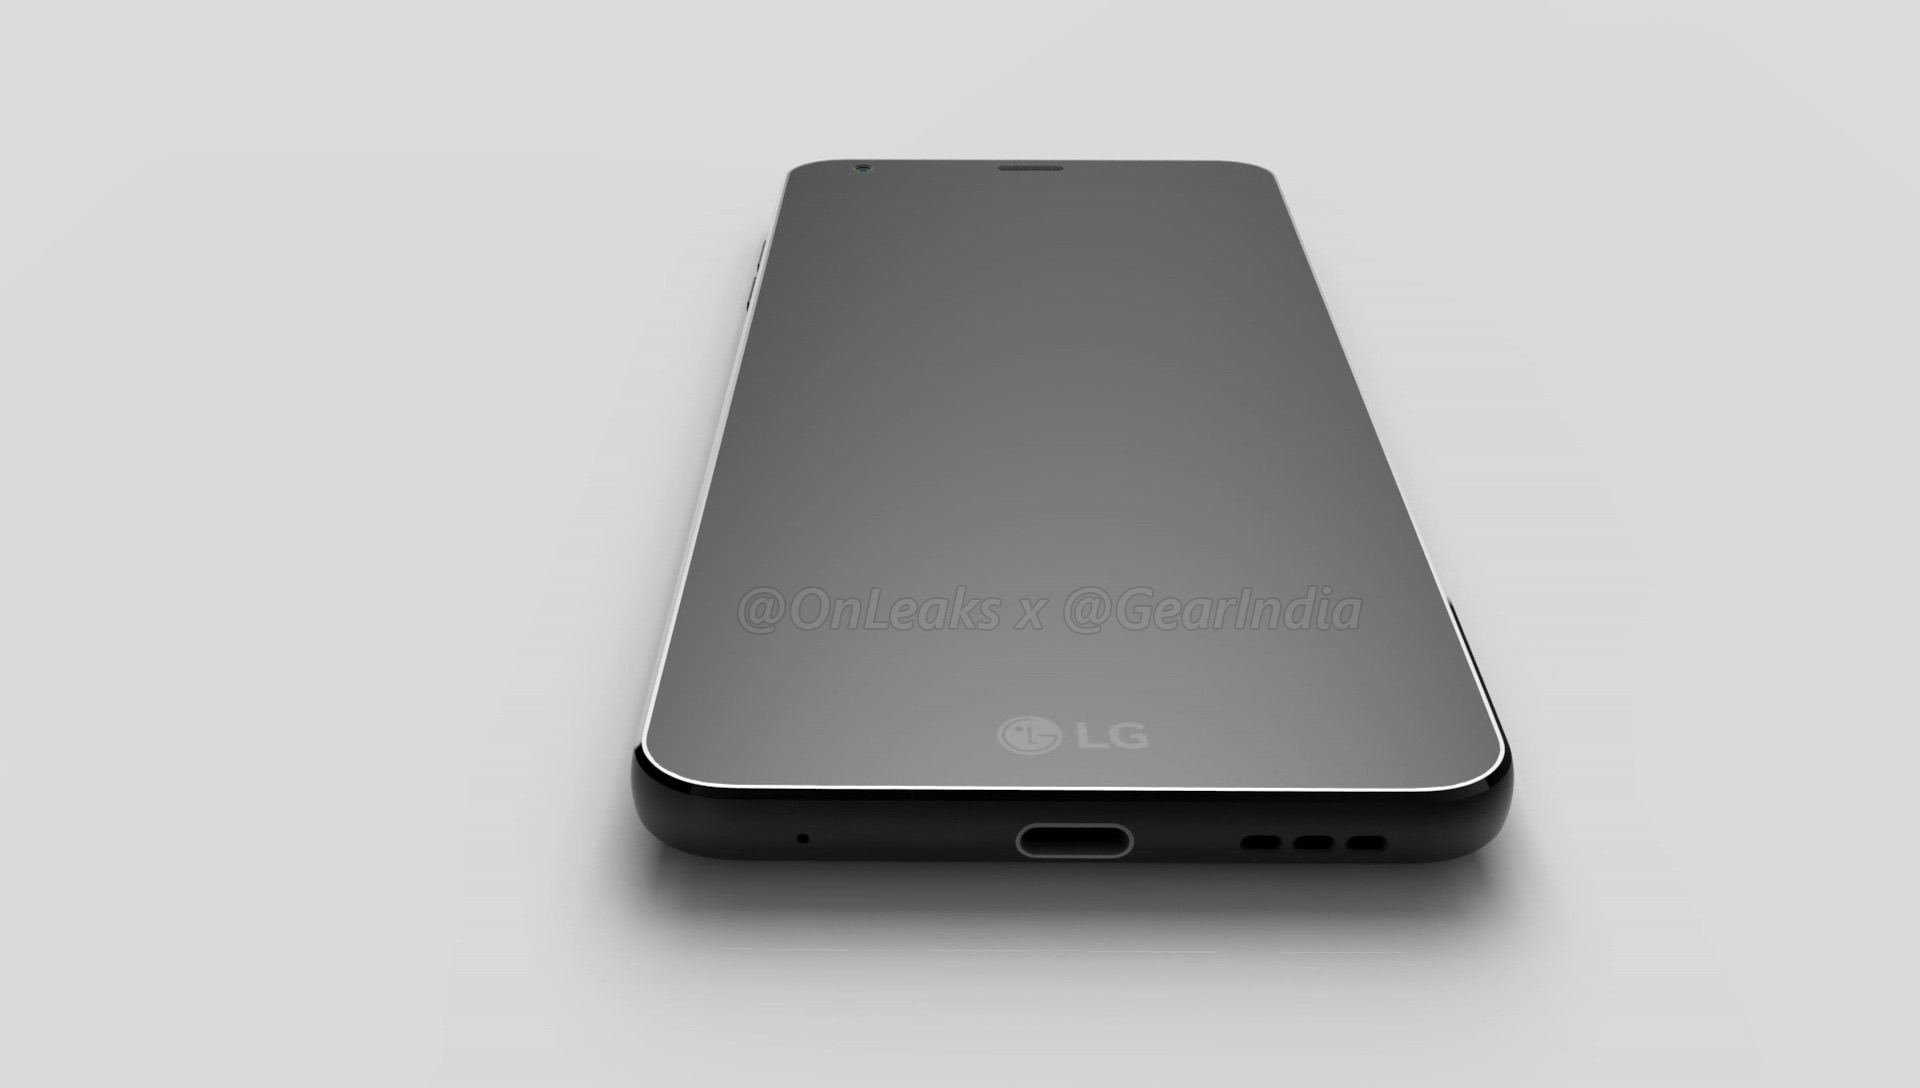 LG G6 3D Renders Leaked Showing a Beautiful Design 1